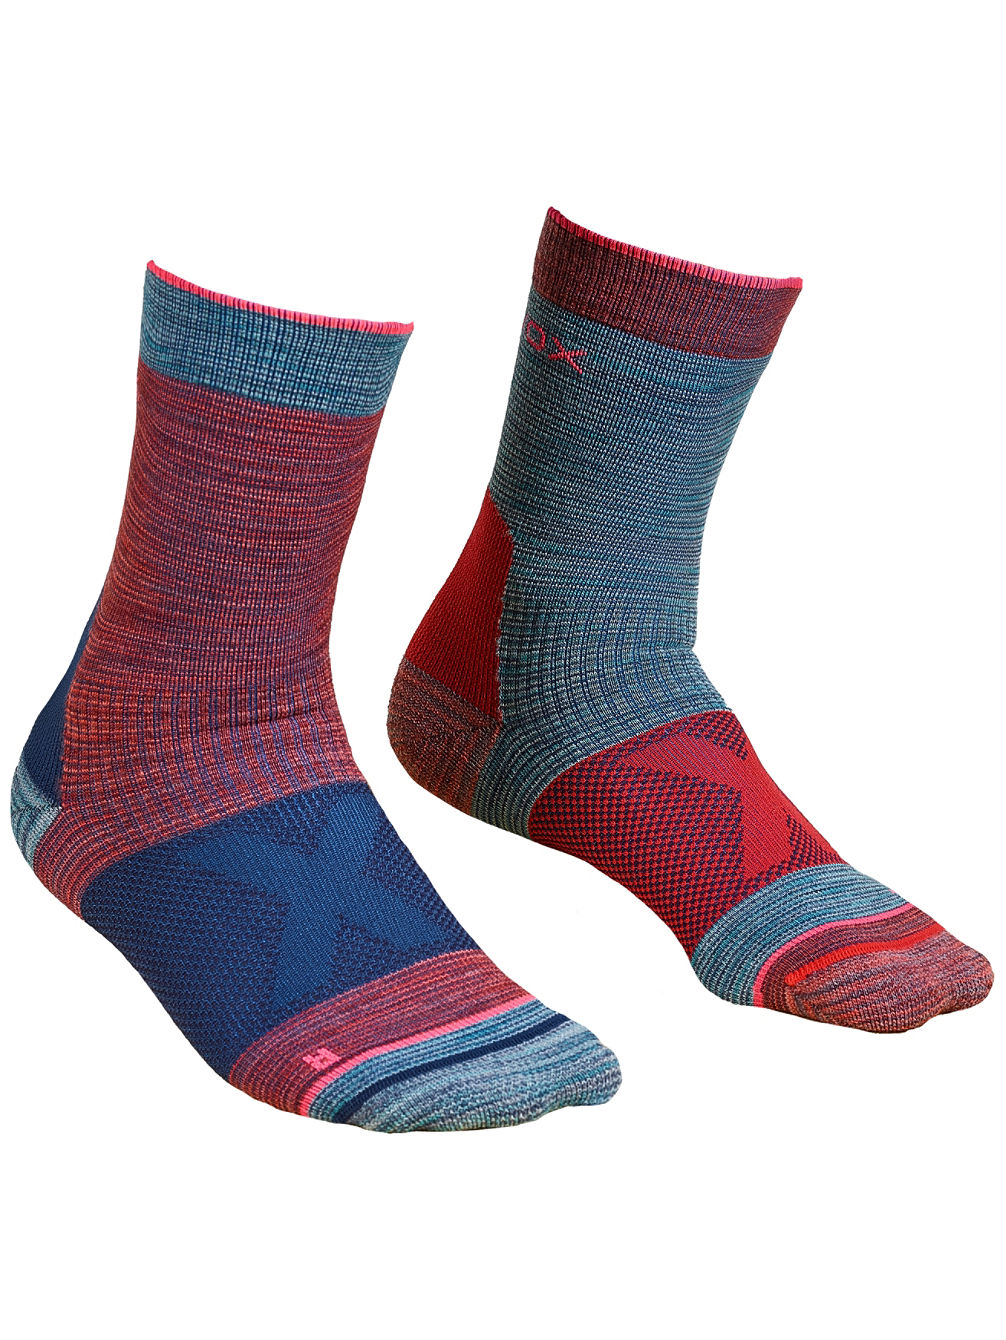 Alpinist Mid 42-44 Tech Socks